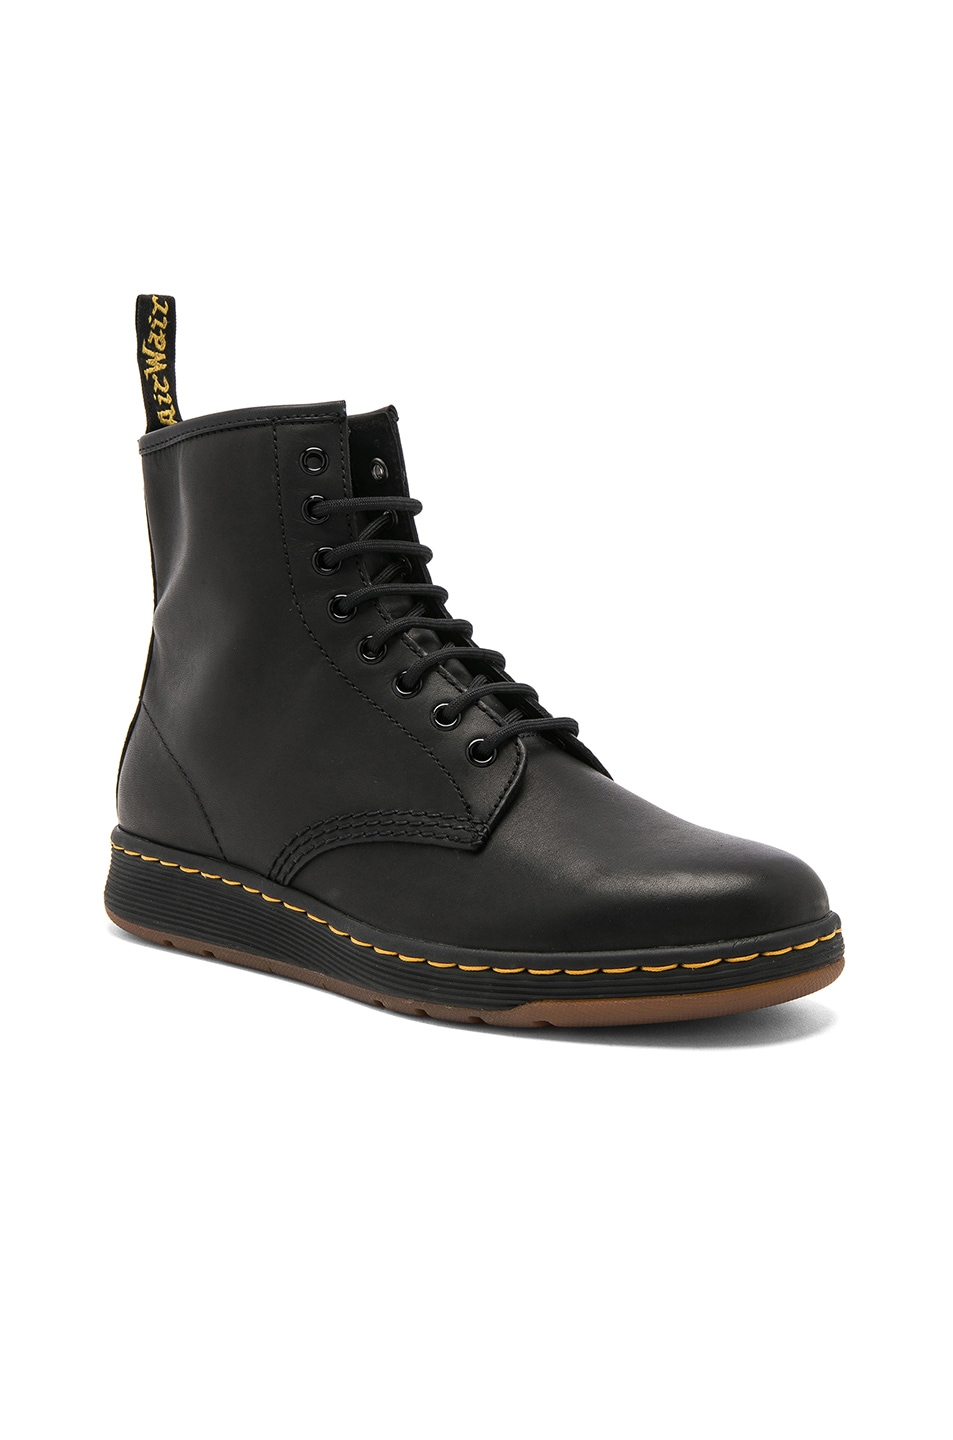 Image 1 of Dr. Martens Newton 8 Eye Leather Boots in Black